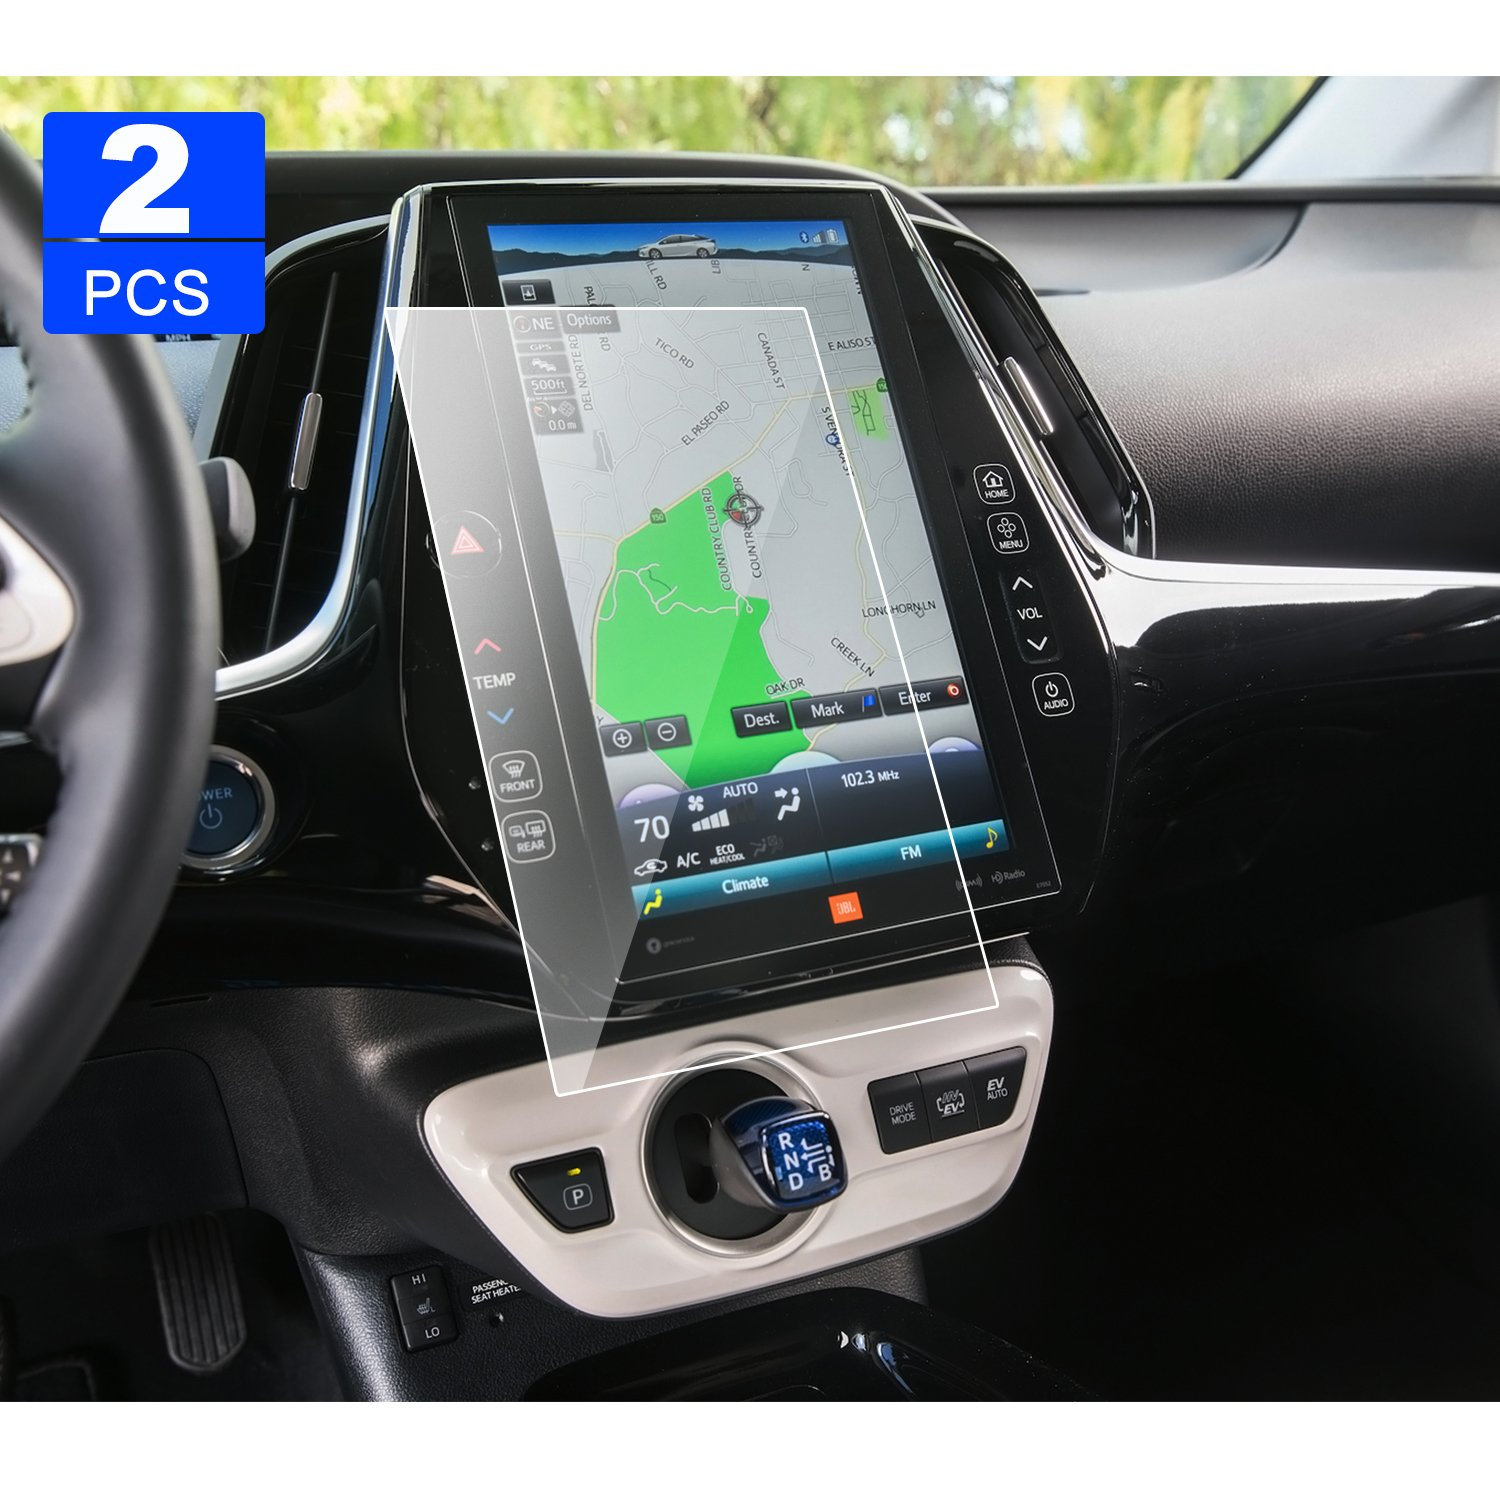 Toyota Prius Prime Entune 11.6 Inch 2013-2018 2 PCS PET Screen Protector, LFOTPP Display Touch Screen Radios Screen Protector Invisible Ultra HD Clear Film Anti Scratch Skin Guard Smooth Self-adhesive